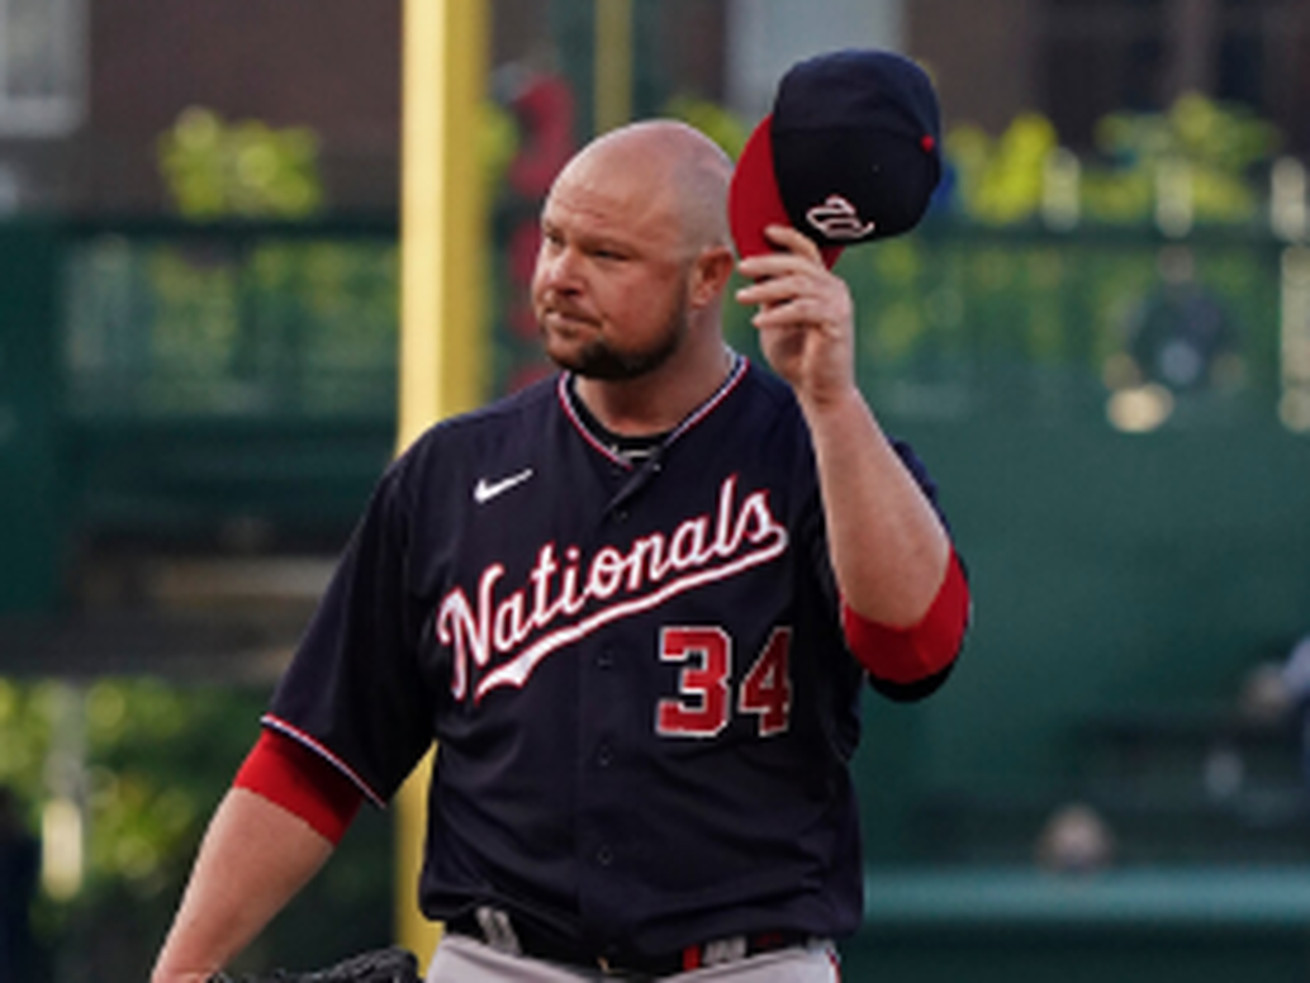 Former Cubs left-hander Jon Lester tips his cap to the crowd after taking the mound in the first inning Monday for the Nationals at Wrigley Field.